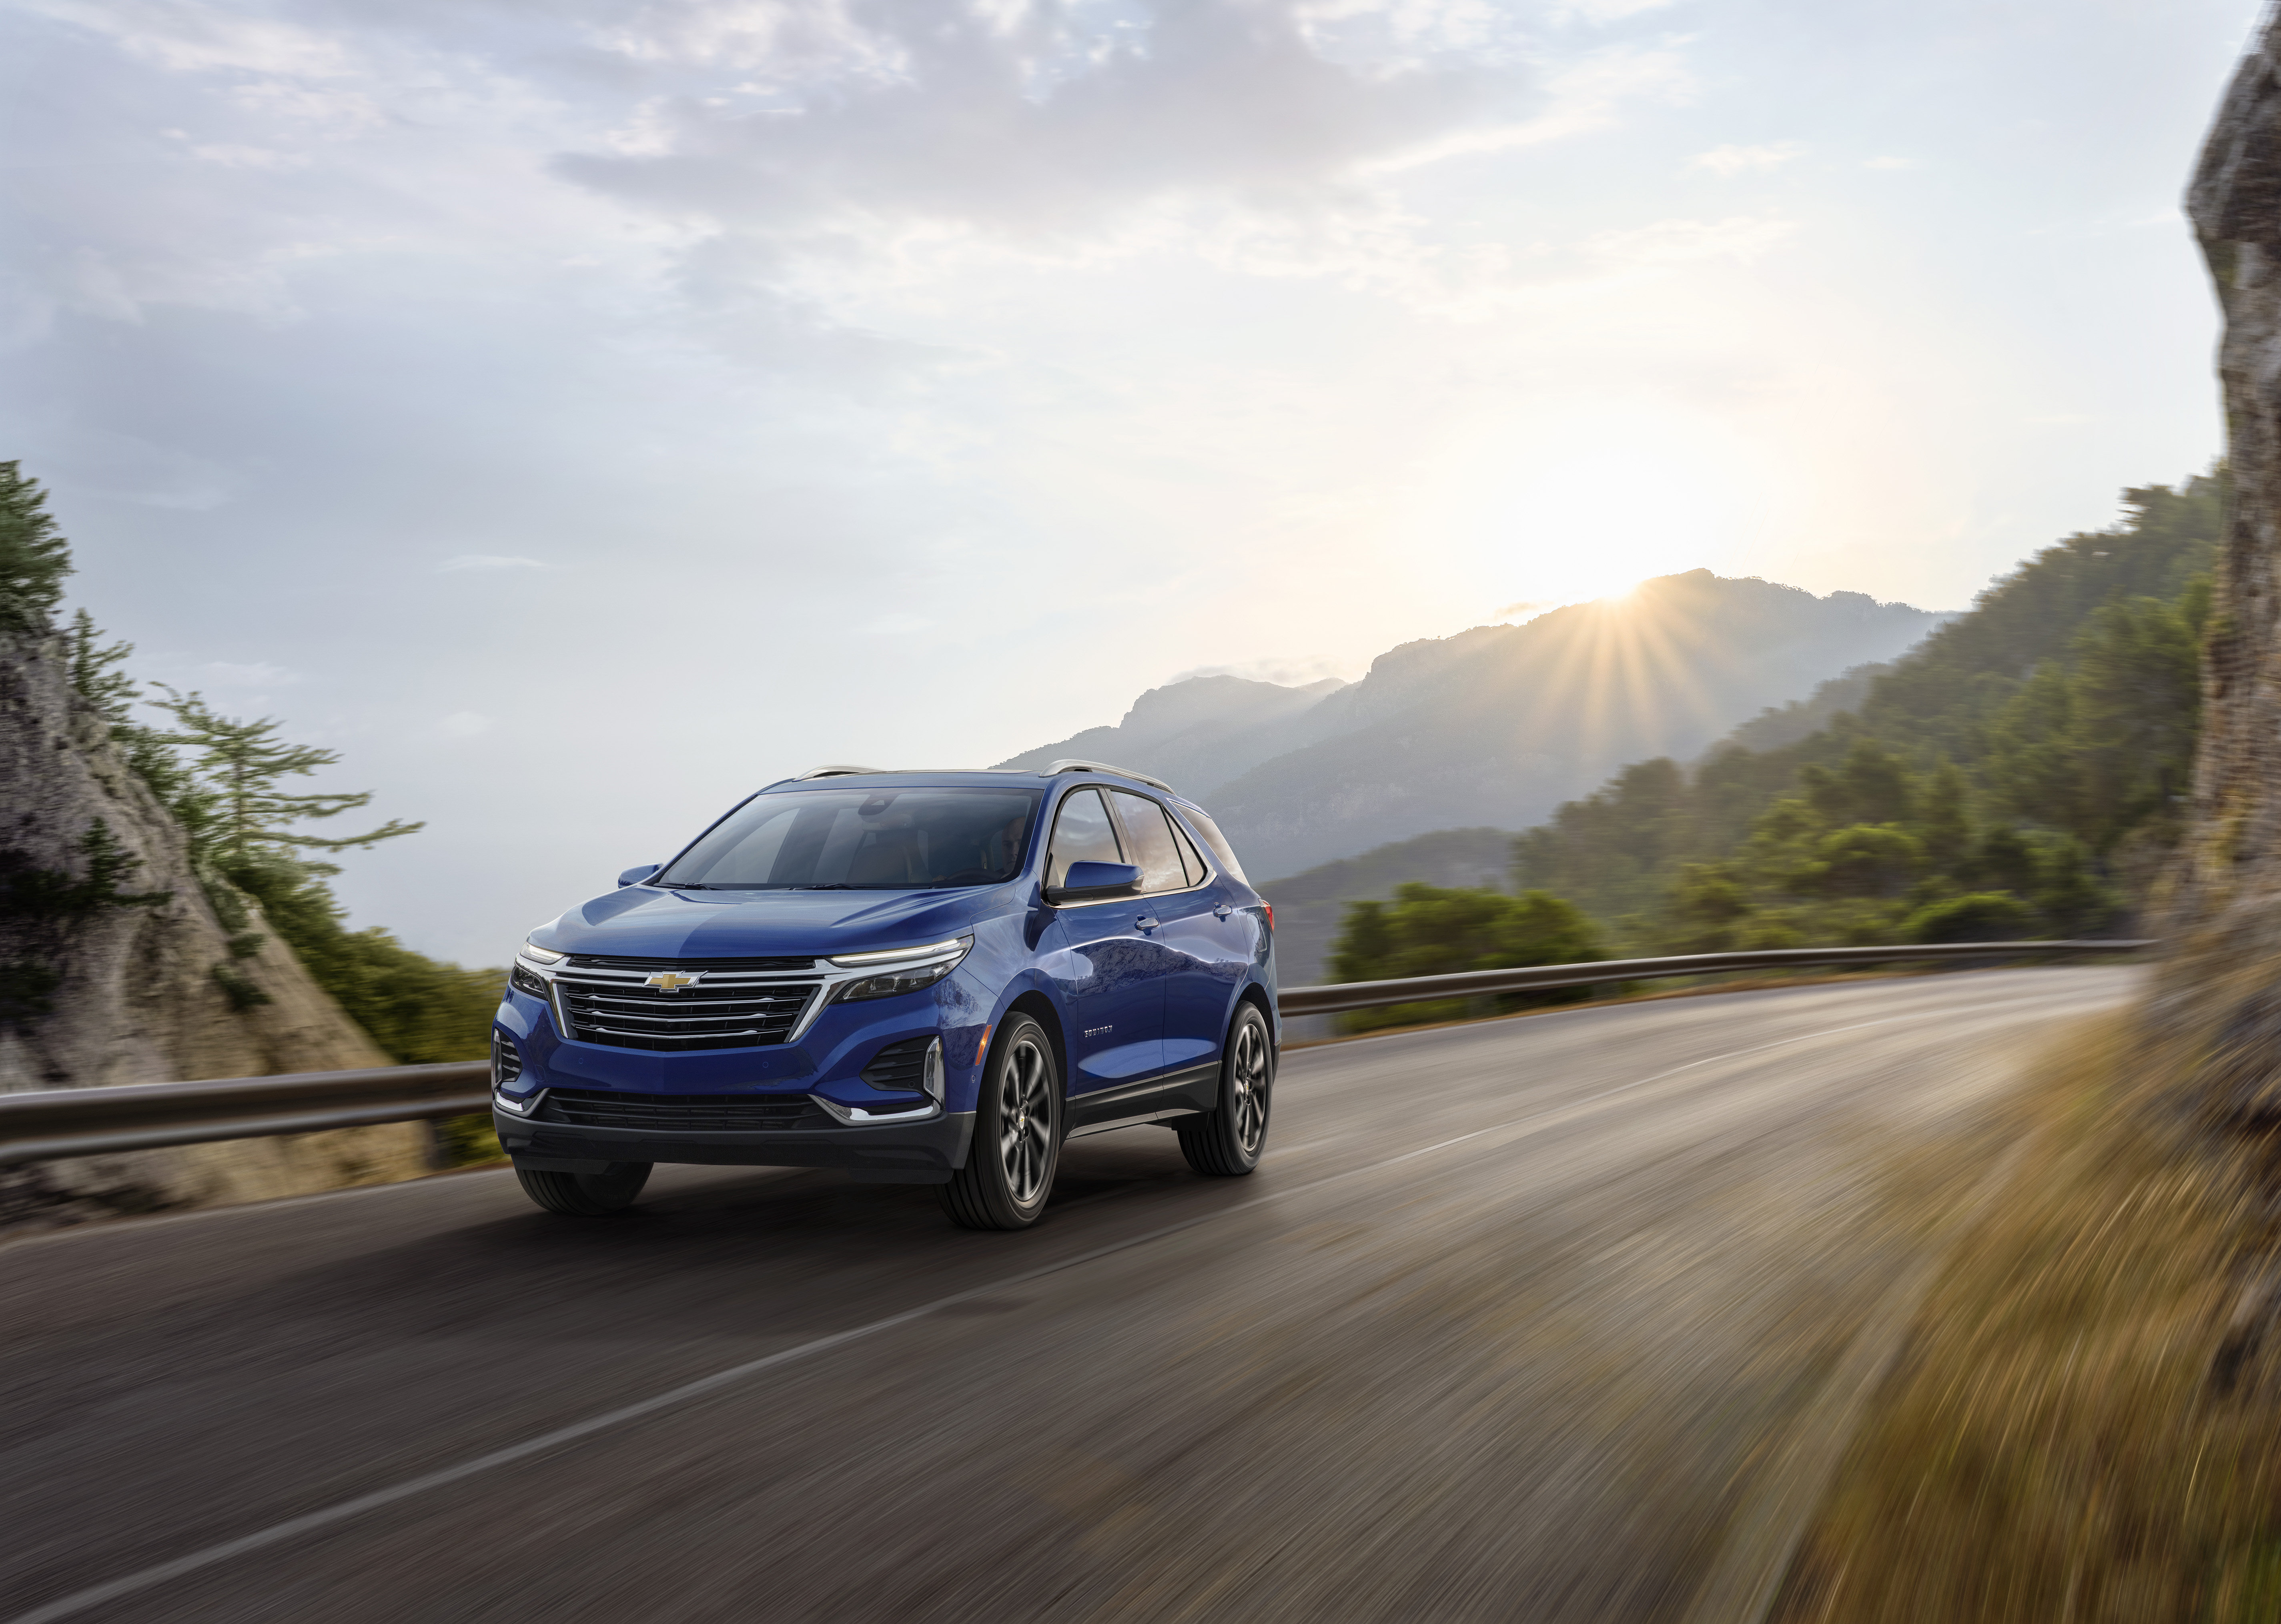 Can The Chevrolet Equinox Tow a Camper Trailer?